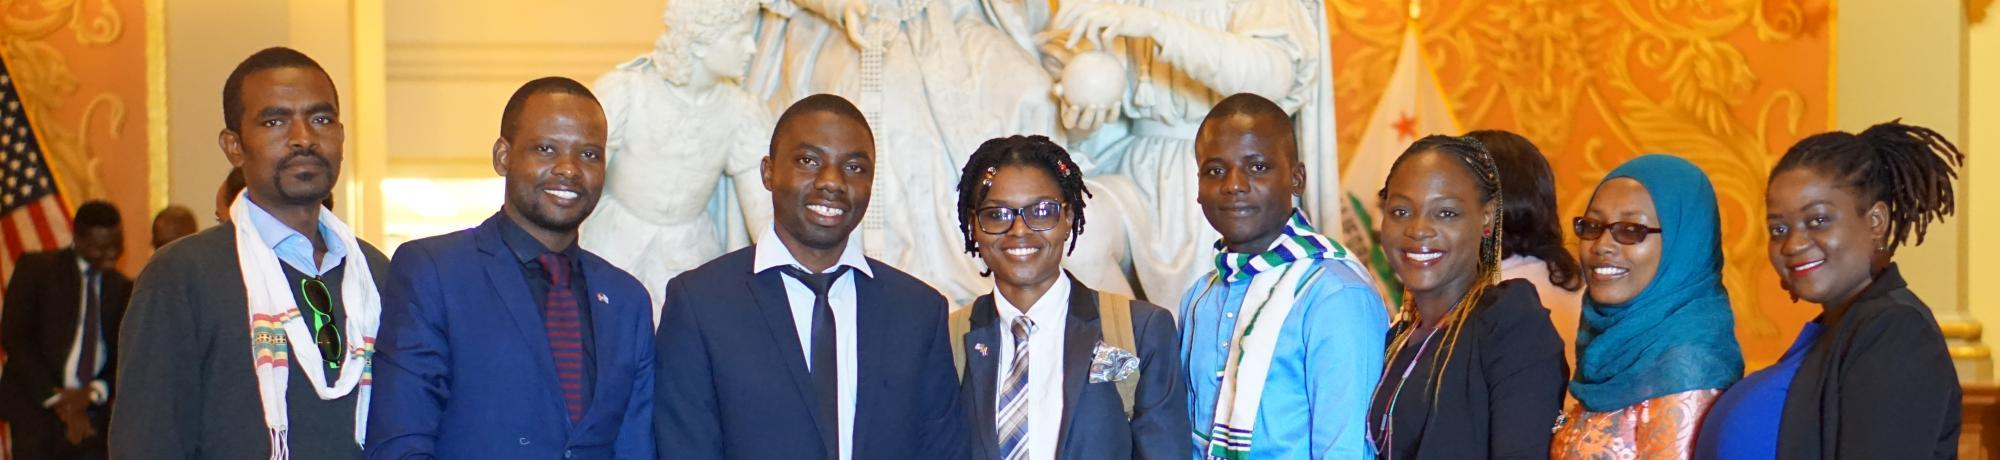 2018 mandela fellows at the state capitol